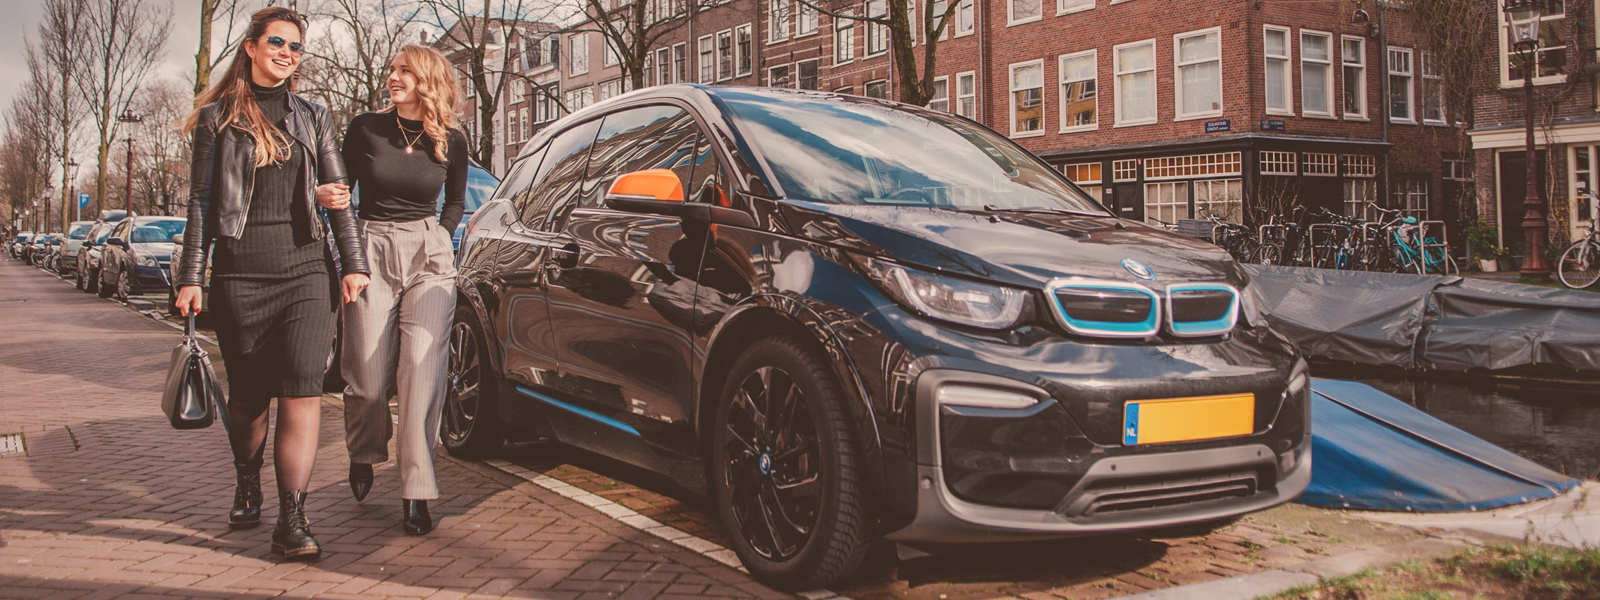 sixt share carsharing in amsterdam bmw i3 gracht